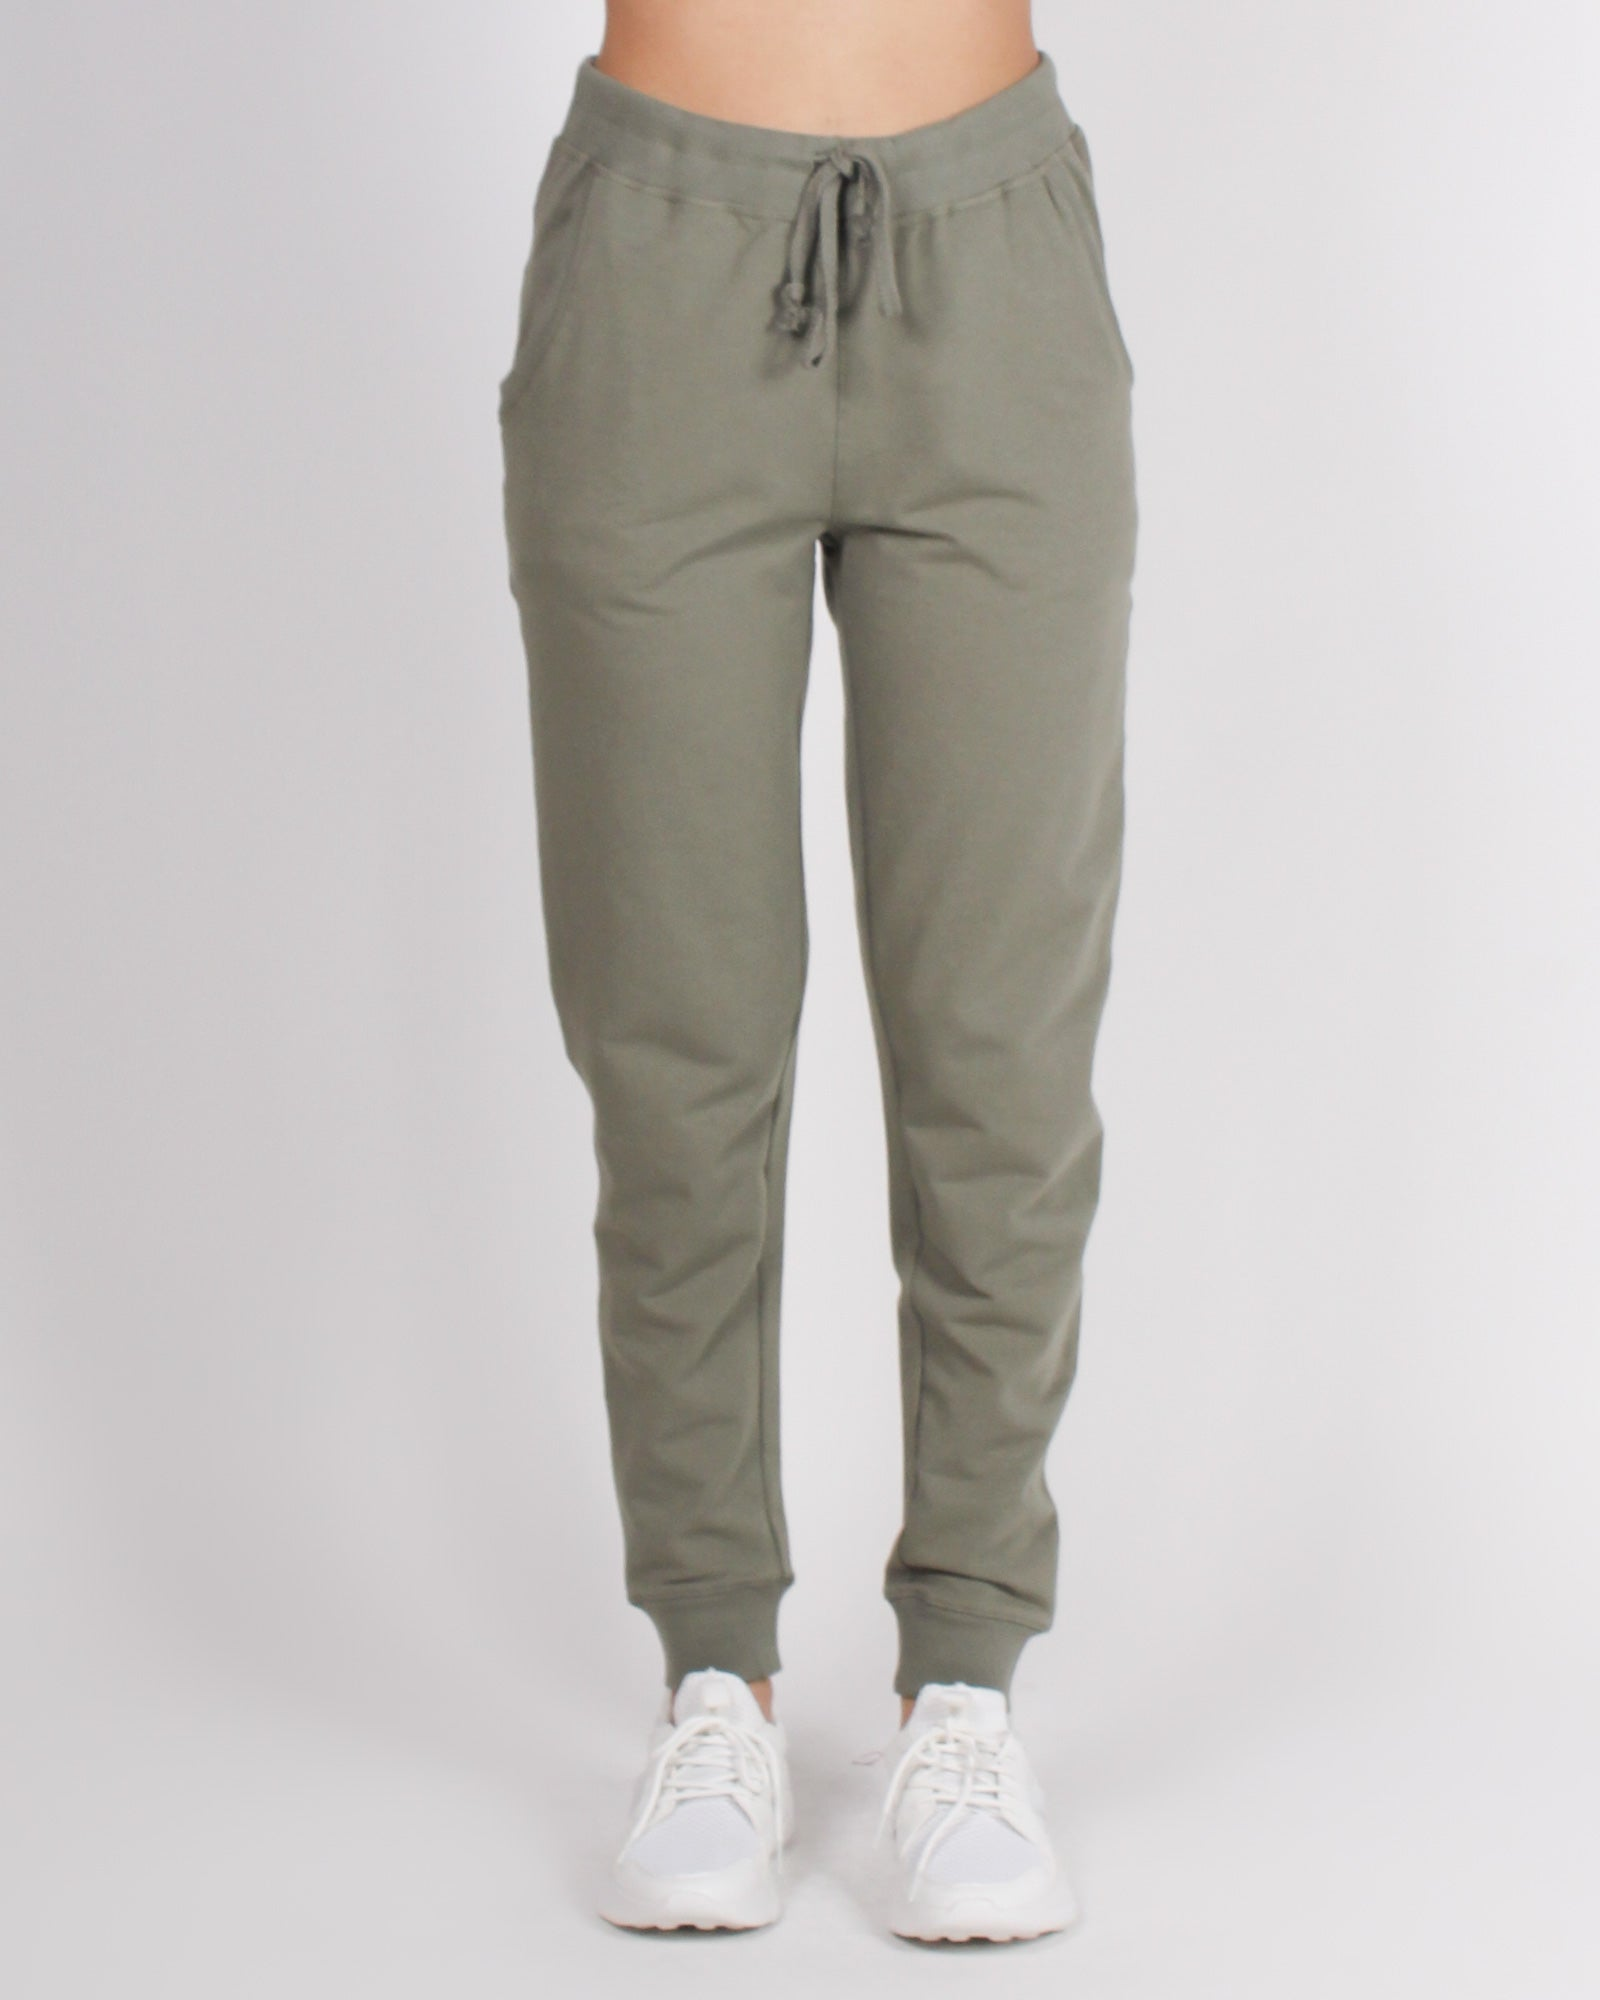 Fashion Q Shop Q Bombastic Love Jogger Pants (Olive) 65776